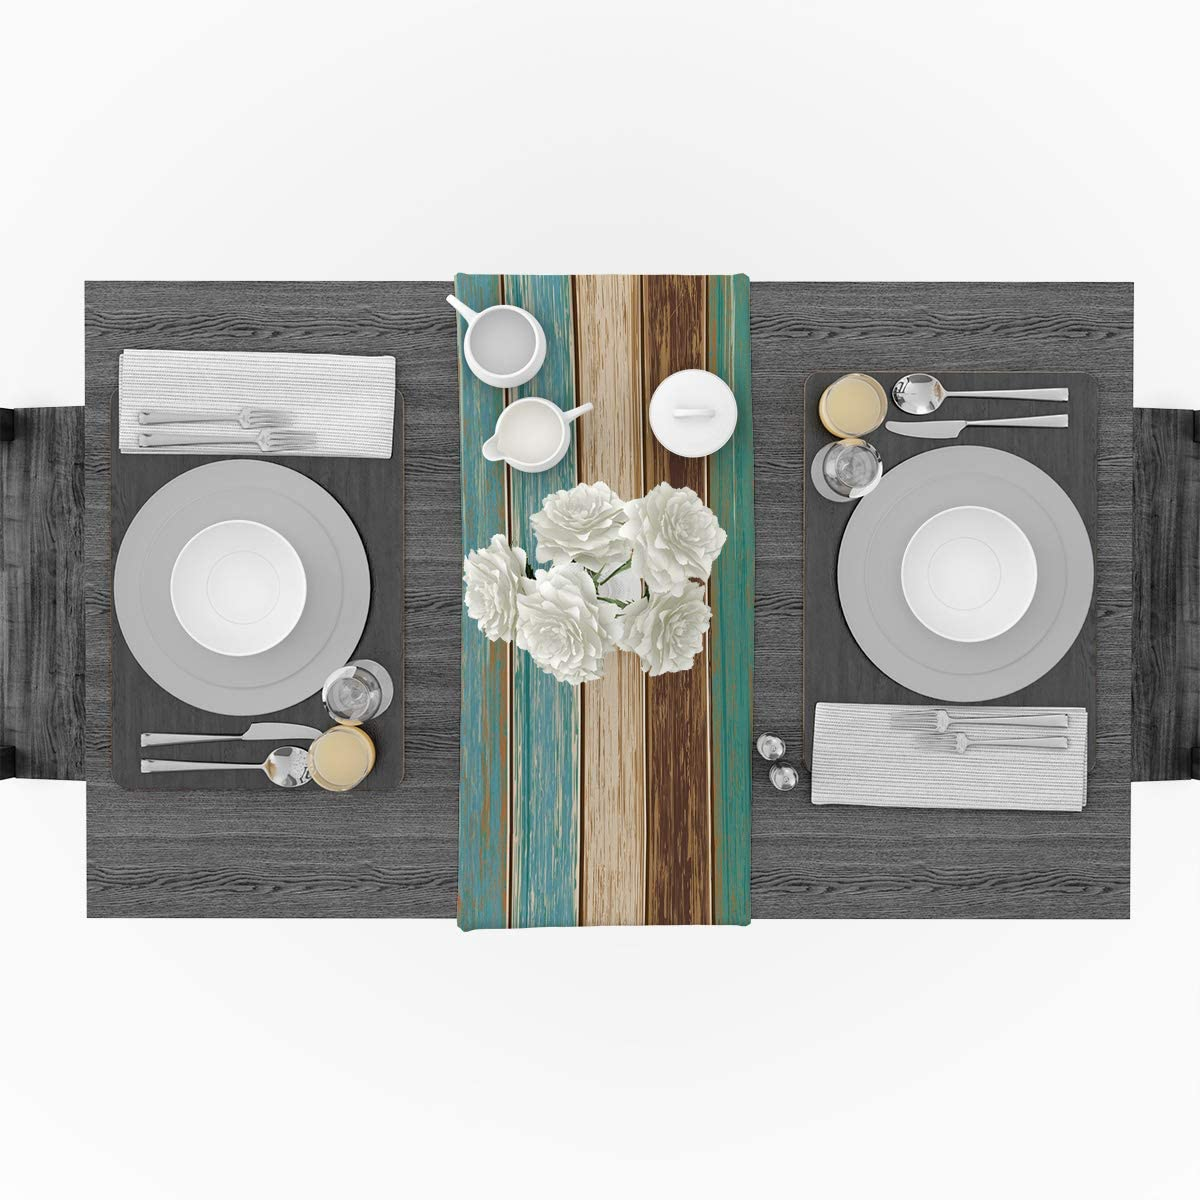 Vandarllin Cotton Linen Table Runner Dresser Scarves Retro Rustic Barn Wood&Teal Green Brown Non-Slip Burlap Rectangle Table Setting Decor for Wedding Party Holiday Dinner Home, (13X70 Inch): Home & Kitchen